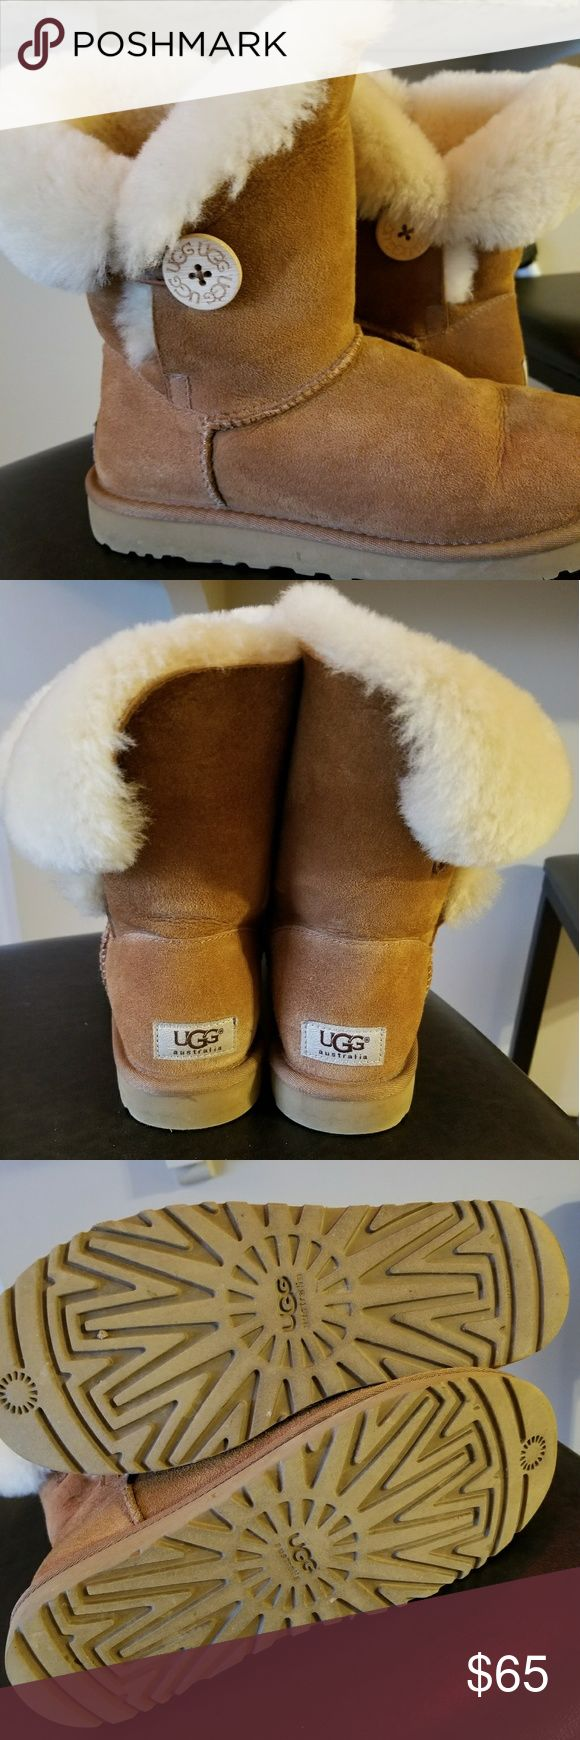 UGG Boots, Women's Size 7 & UGG Cleaning Kit Great condition, UGG boots, size 7. Comes w/unused cleaning kit. Non-smoking home. UGG Shoes Winter & Rain Boots